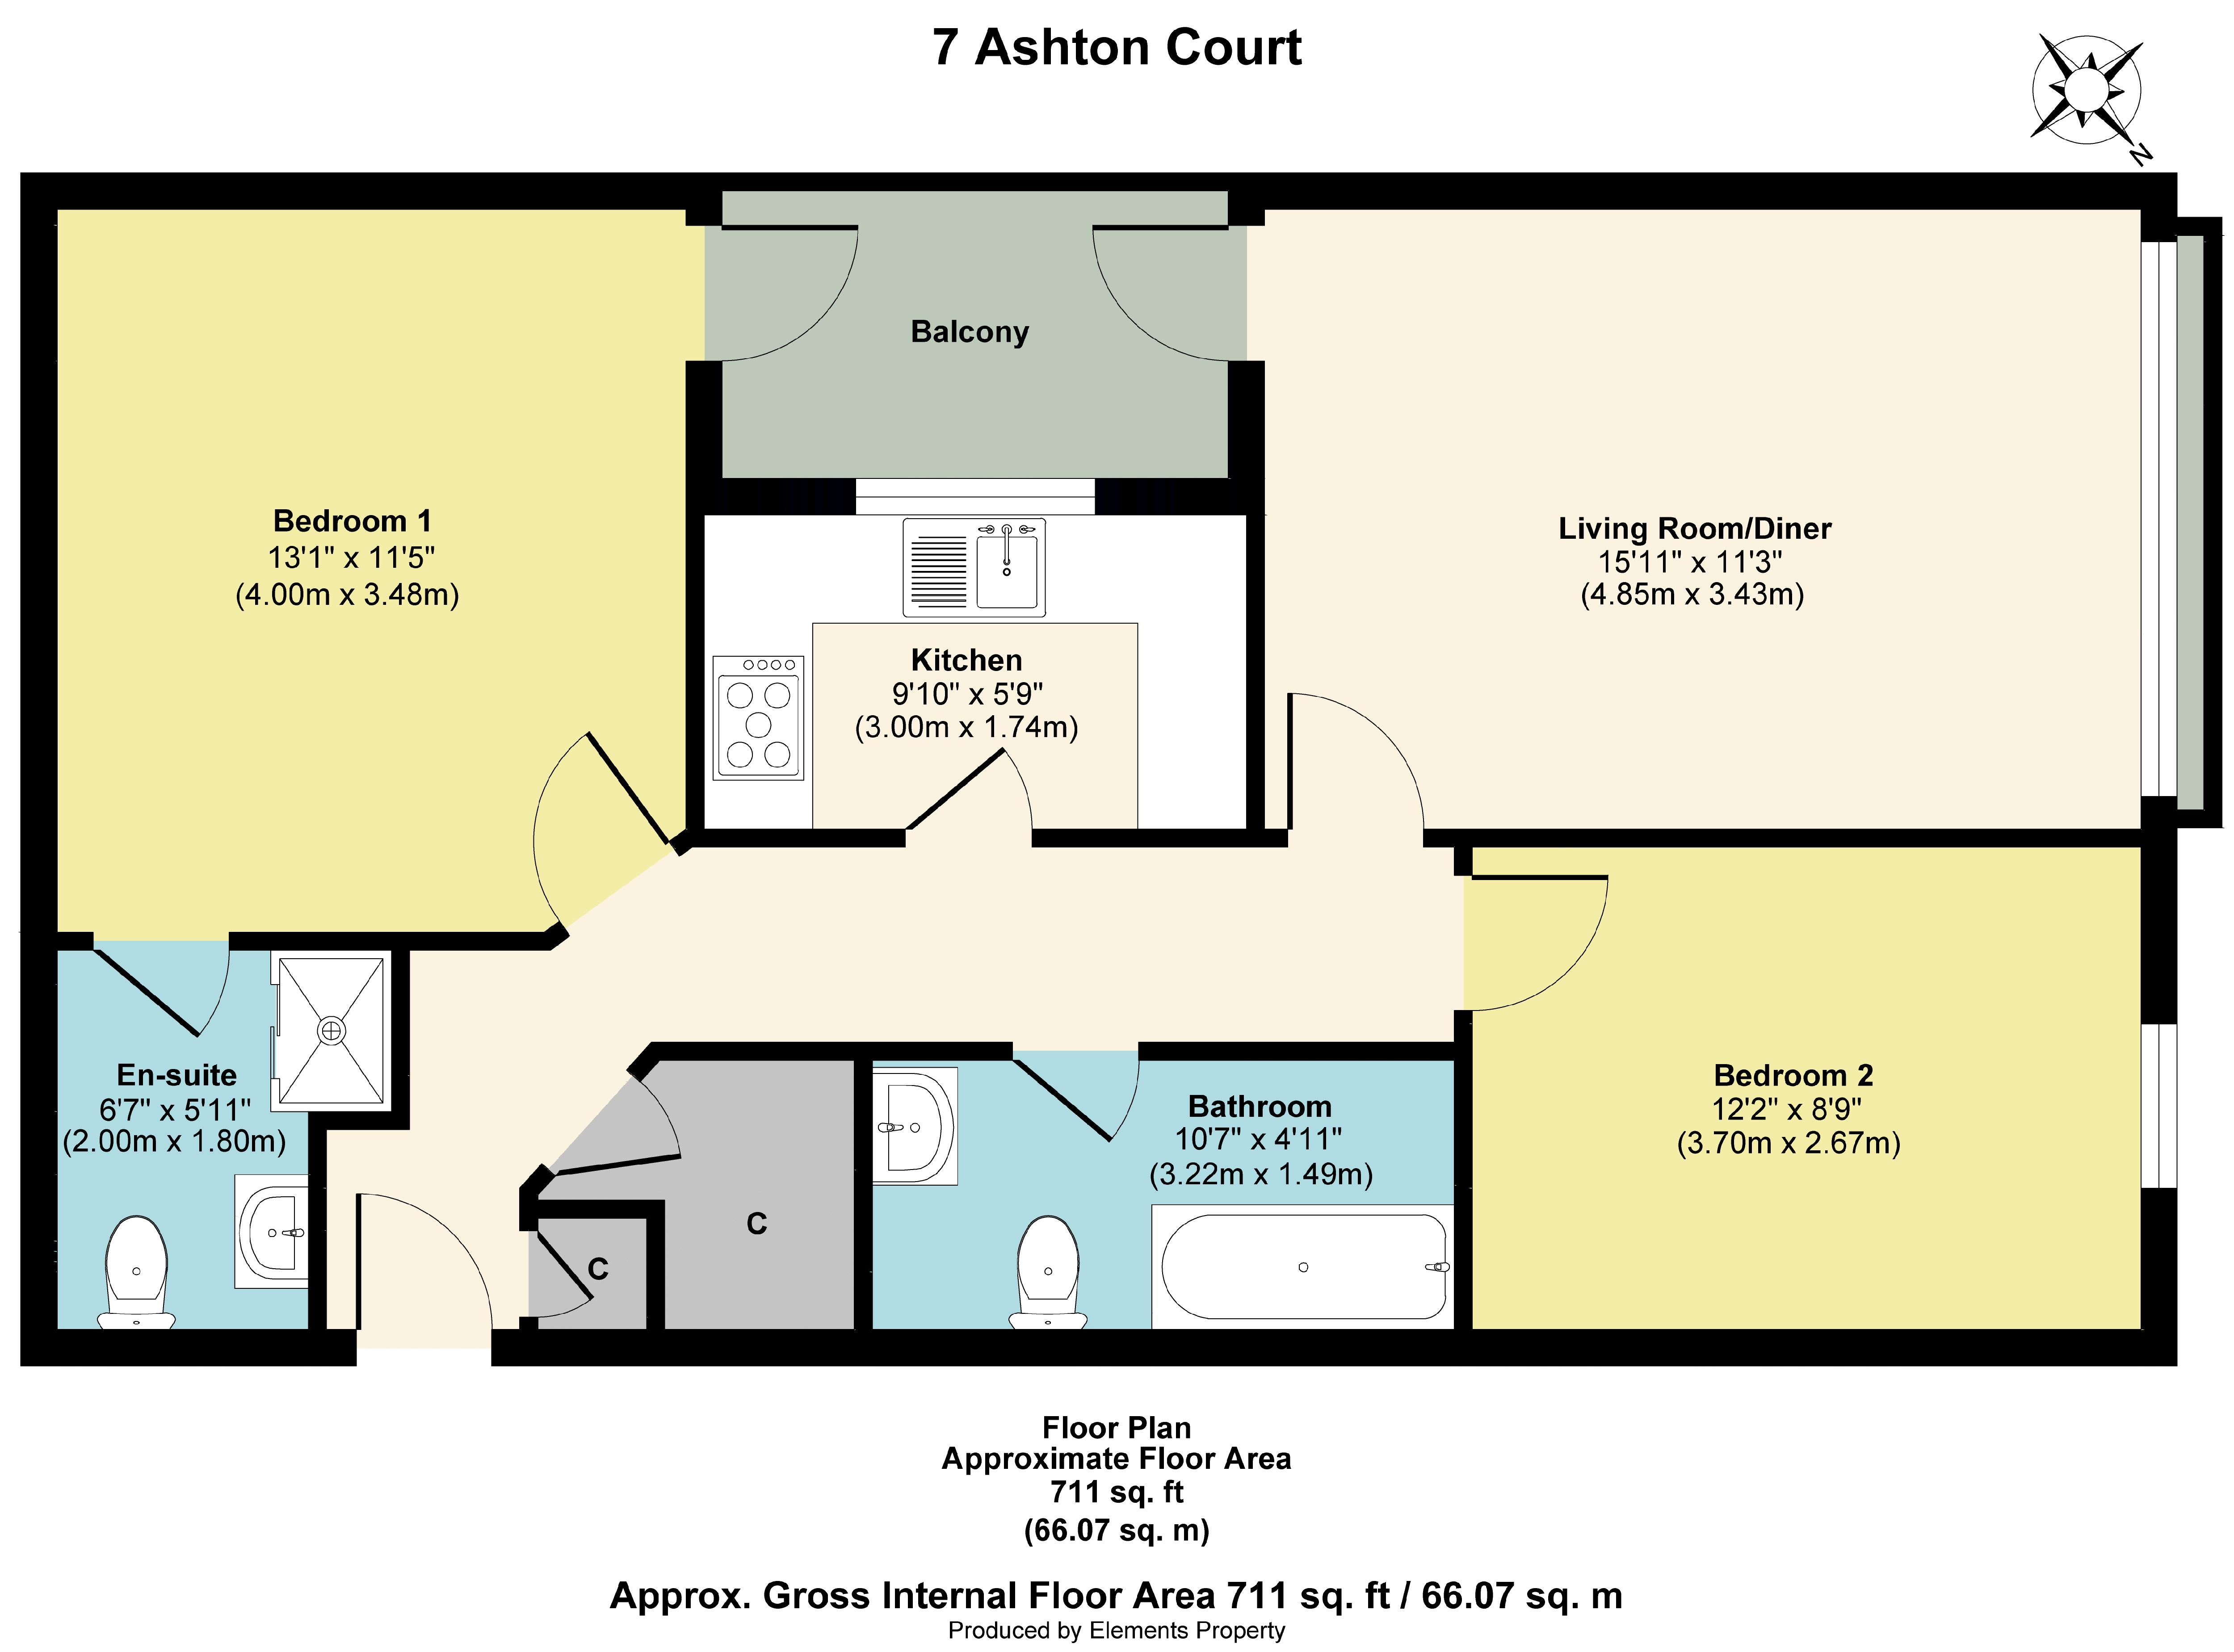 Floorplan from 7 Ashton court